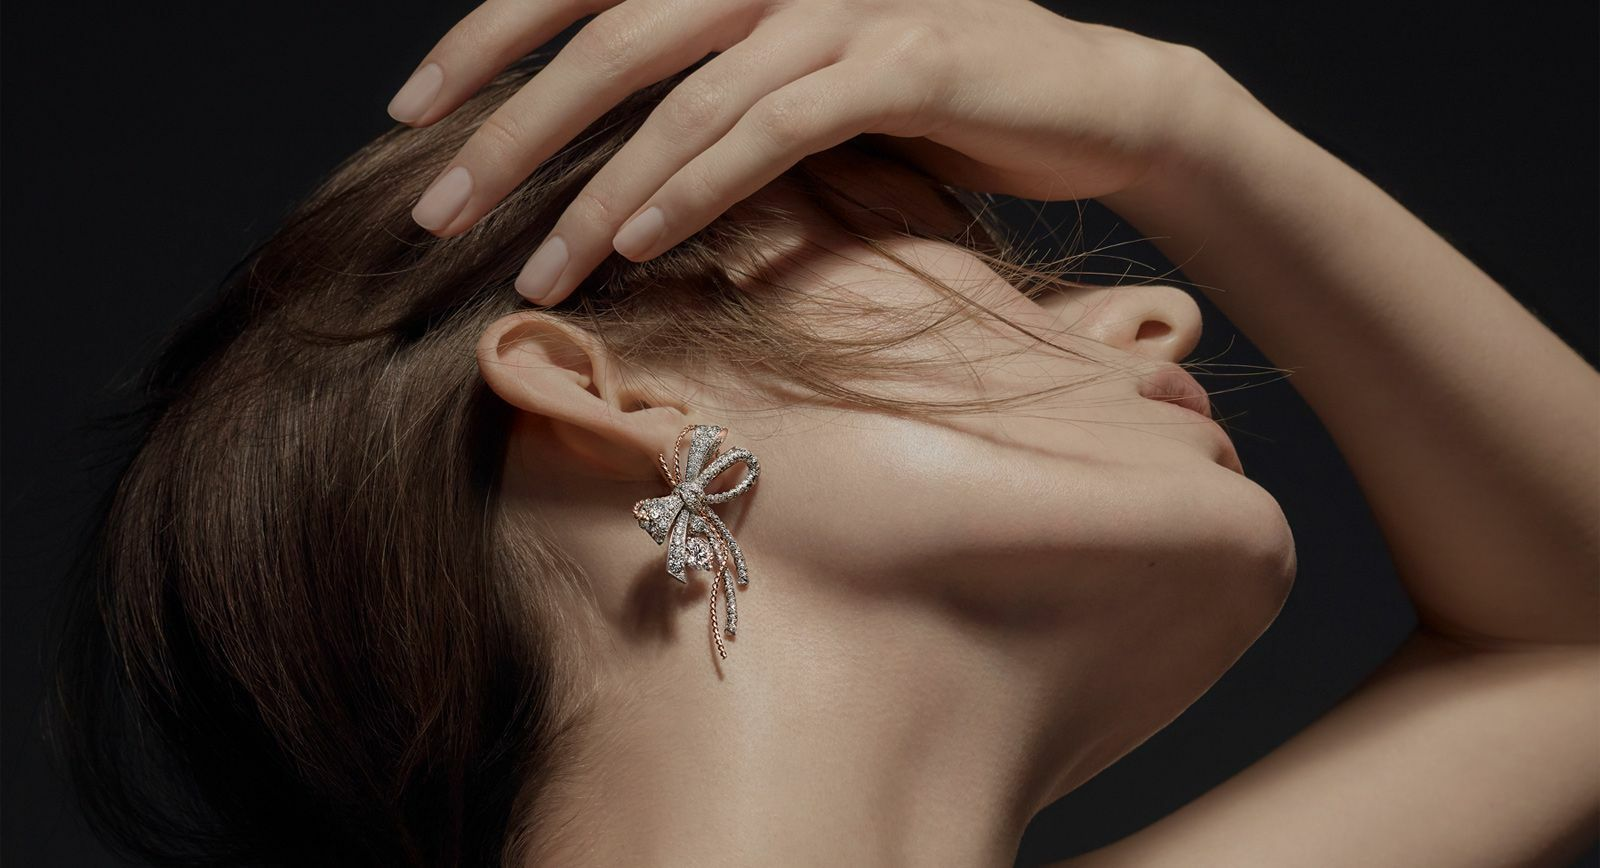 The Cheek and Tenderness of the Chaumet Insolence Collection